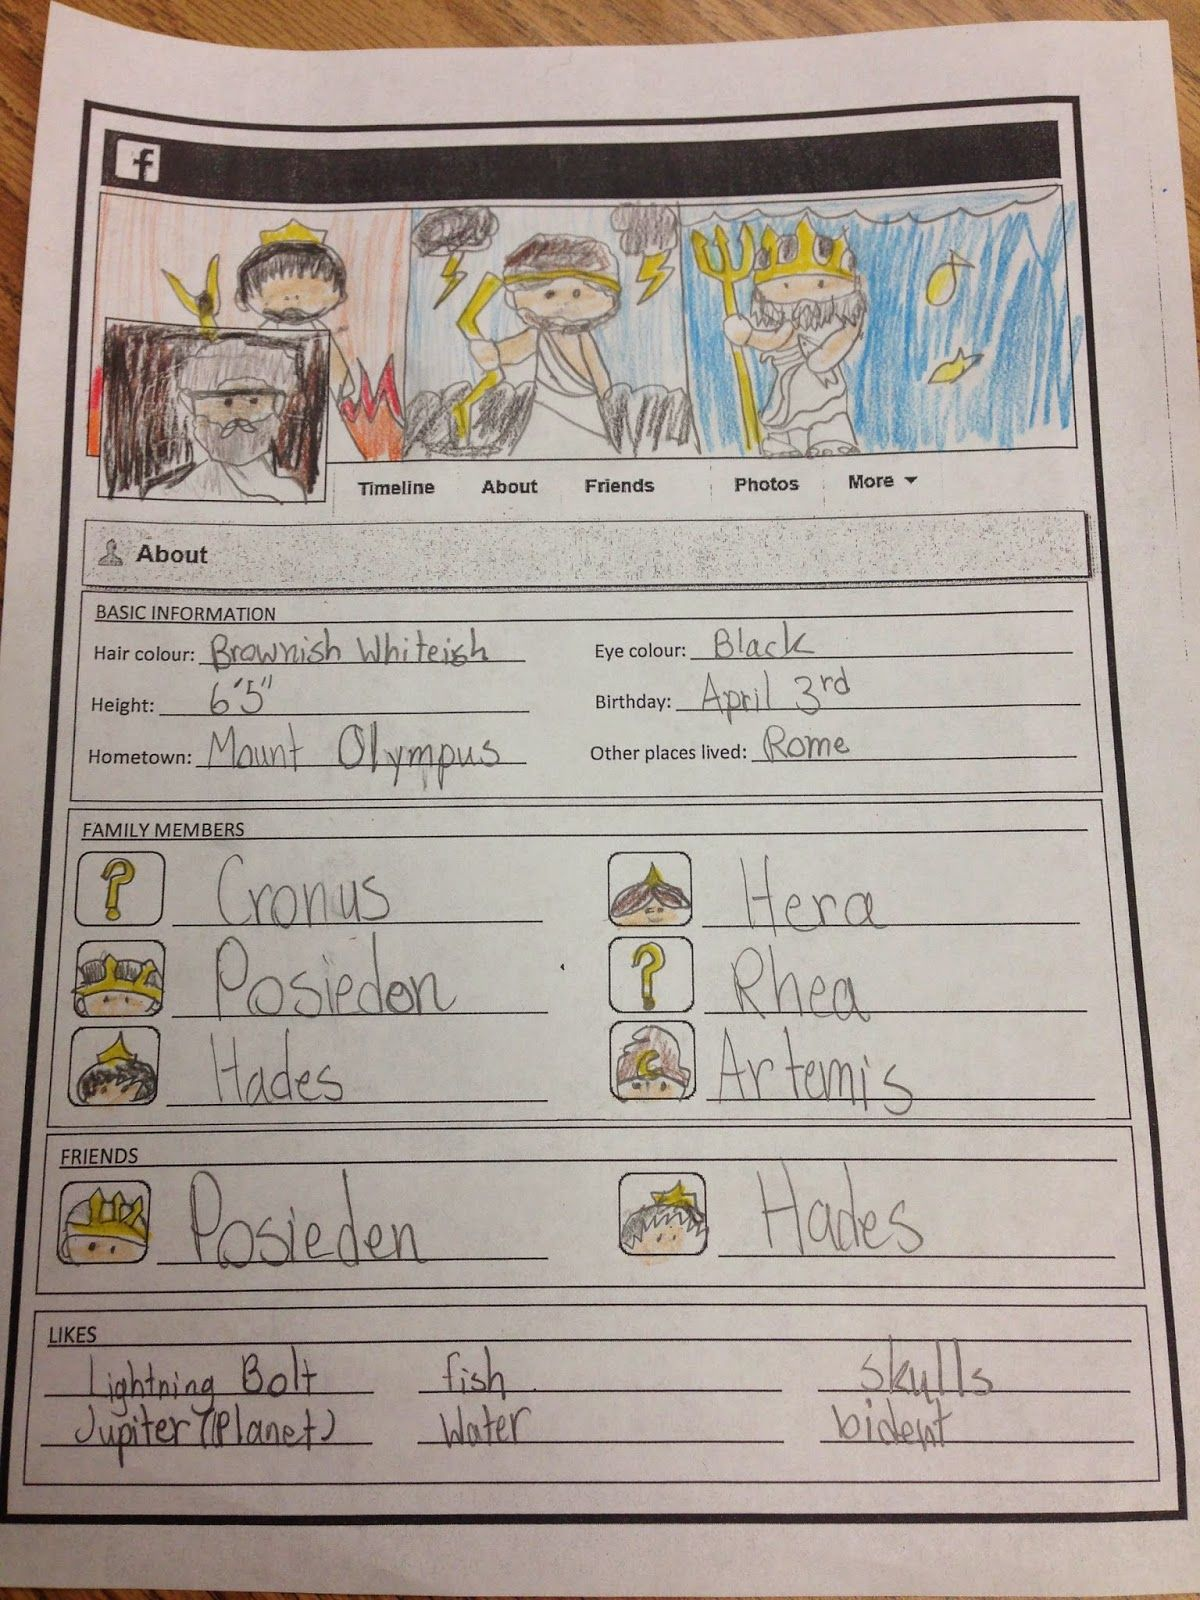 Kids Can Create Facebook Pages For A Greek God Goddess Of Their Choice When Studying Ancient